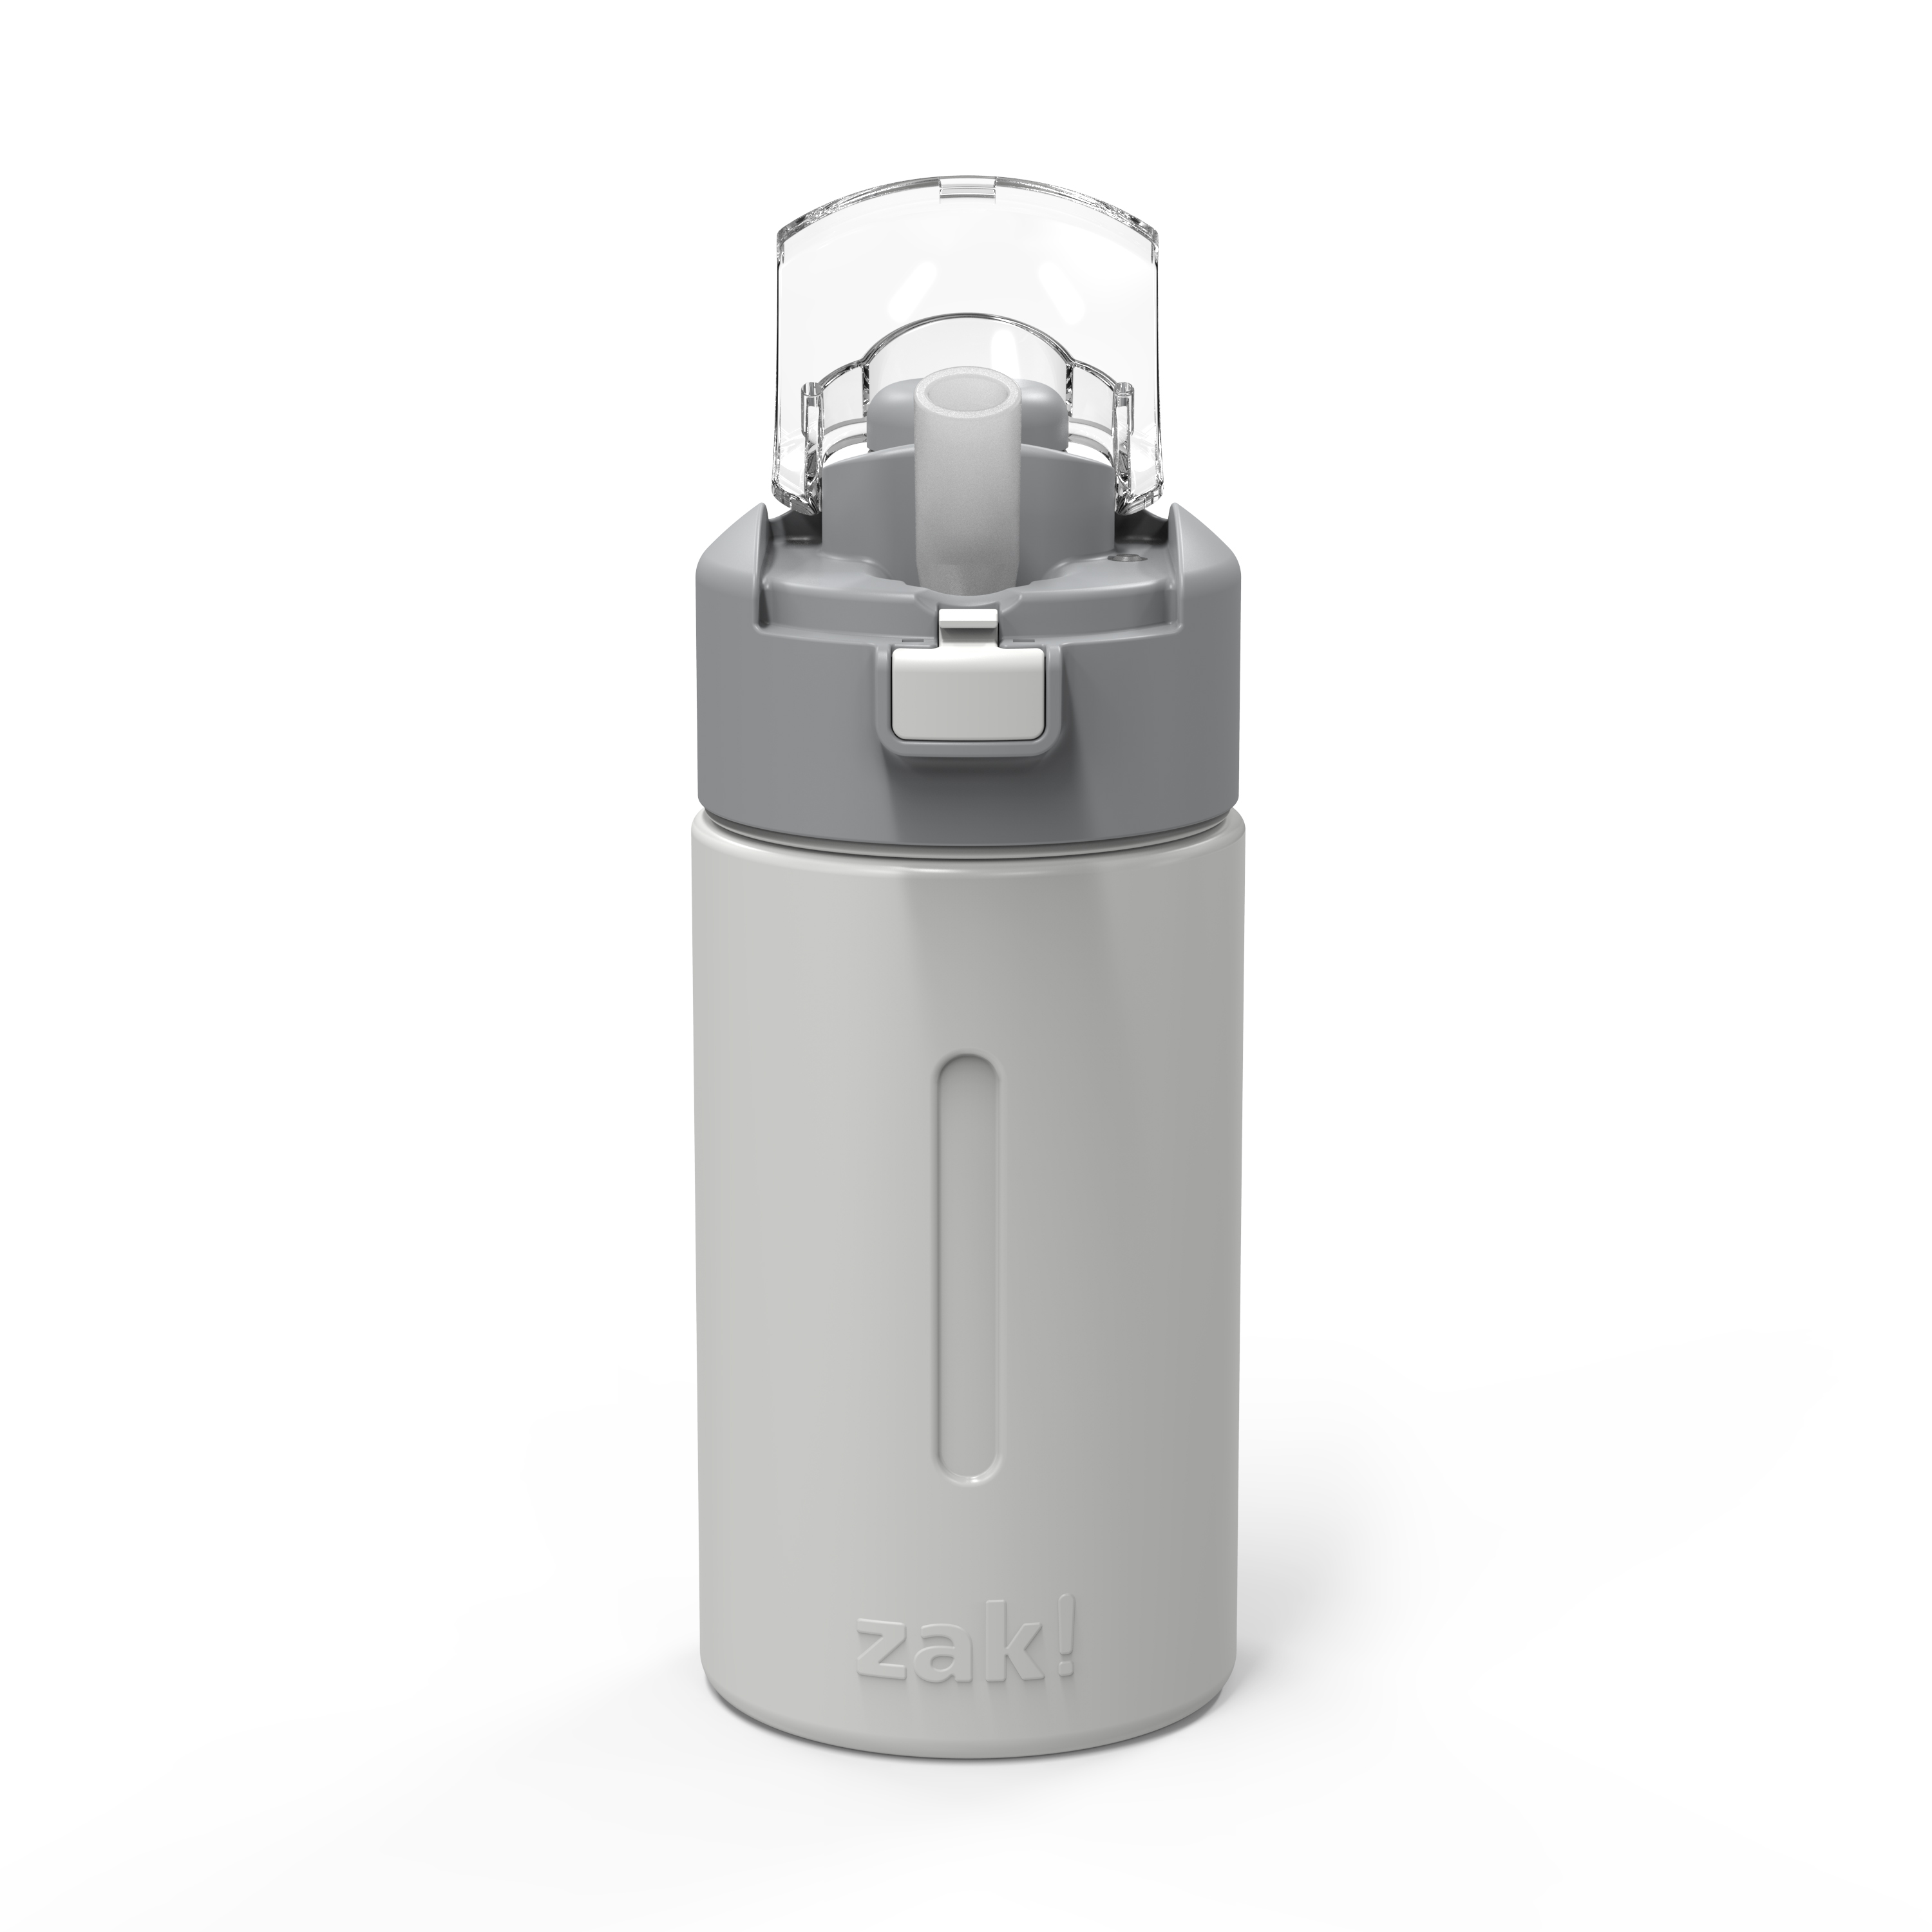 Genesis 12 ounce Vacuum Insulated Stainless Steel Tumbler, Gray slideshow image 4